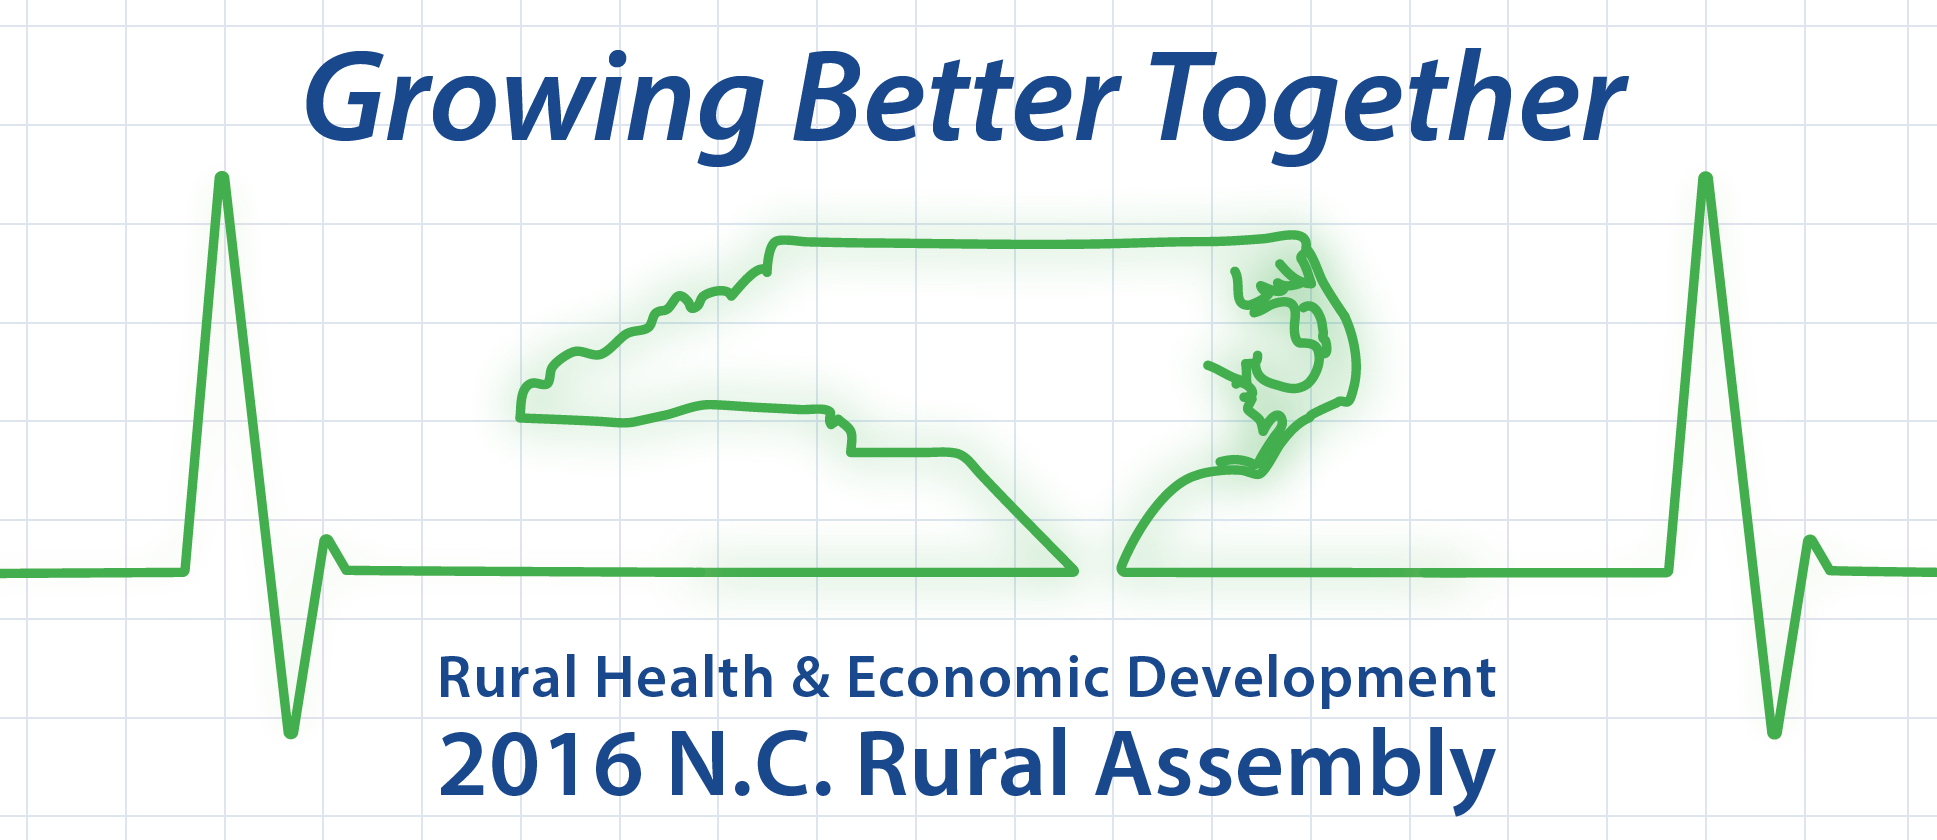 2016 N.C. Rural Assembly: Rural Health & Economic Development